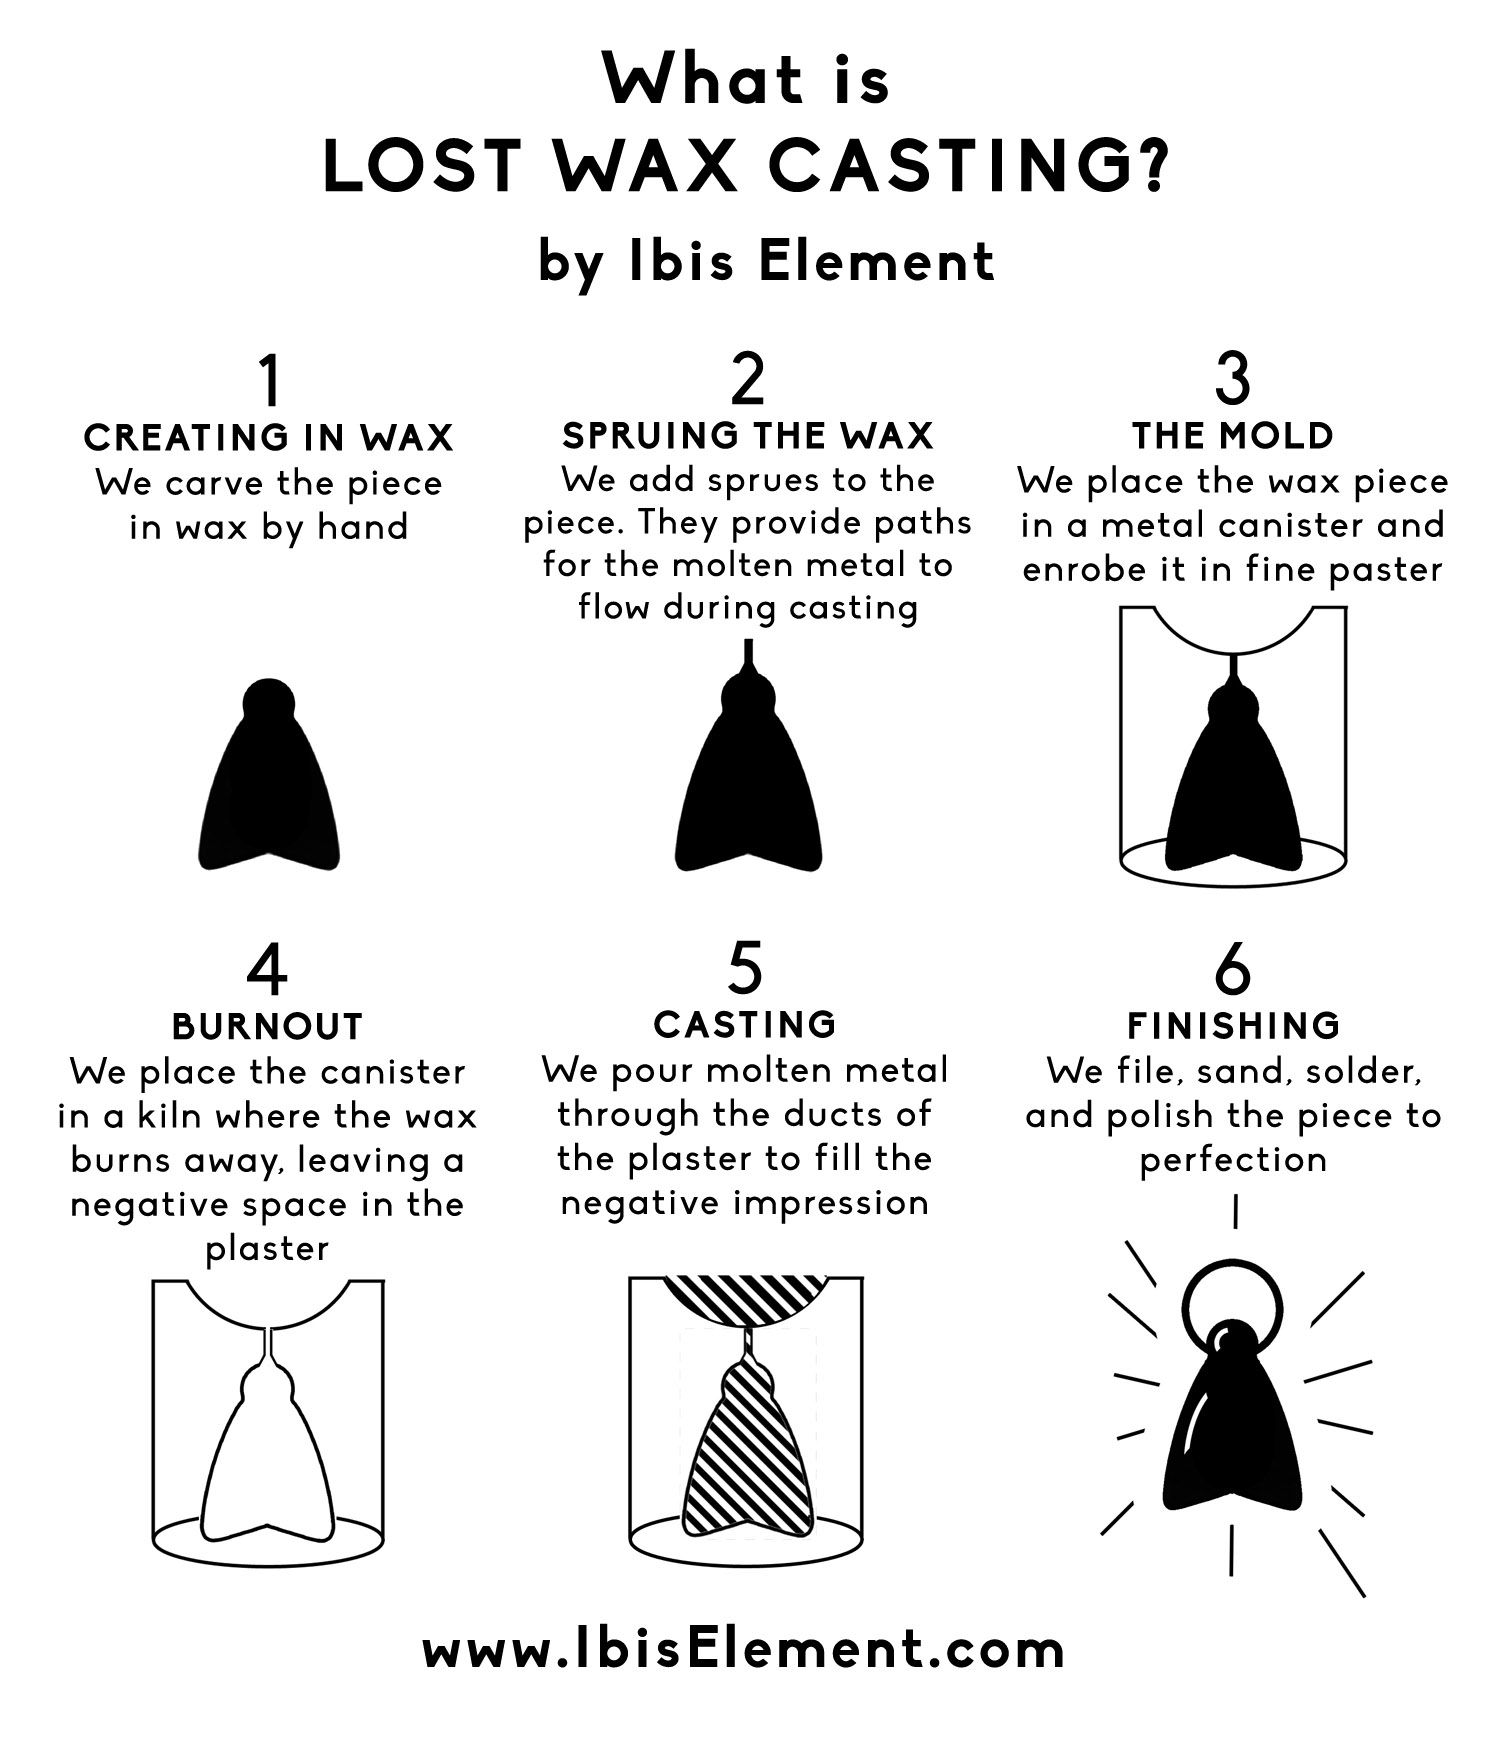 Lost Wax Casting Illustration. Infographic on the process of lost wax casting. What is lost wax casting? Cire perdu. Explanation of lost wax casting.